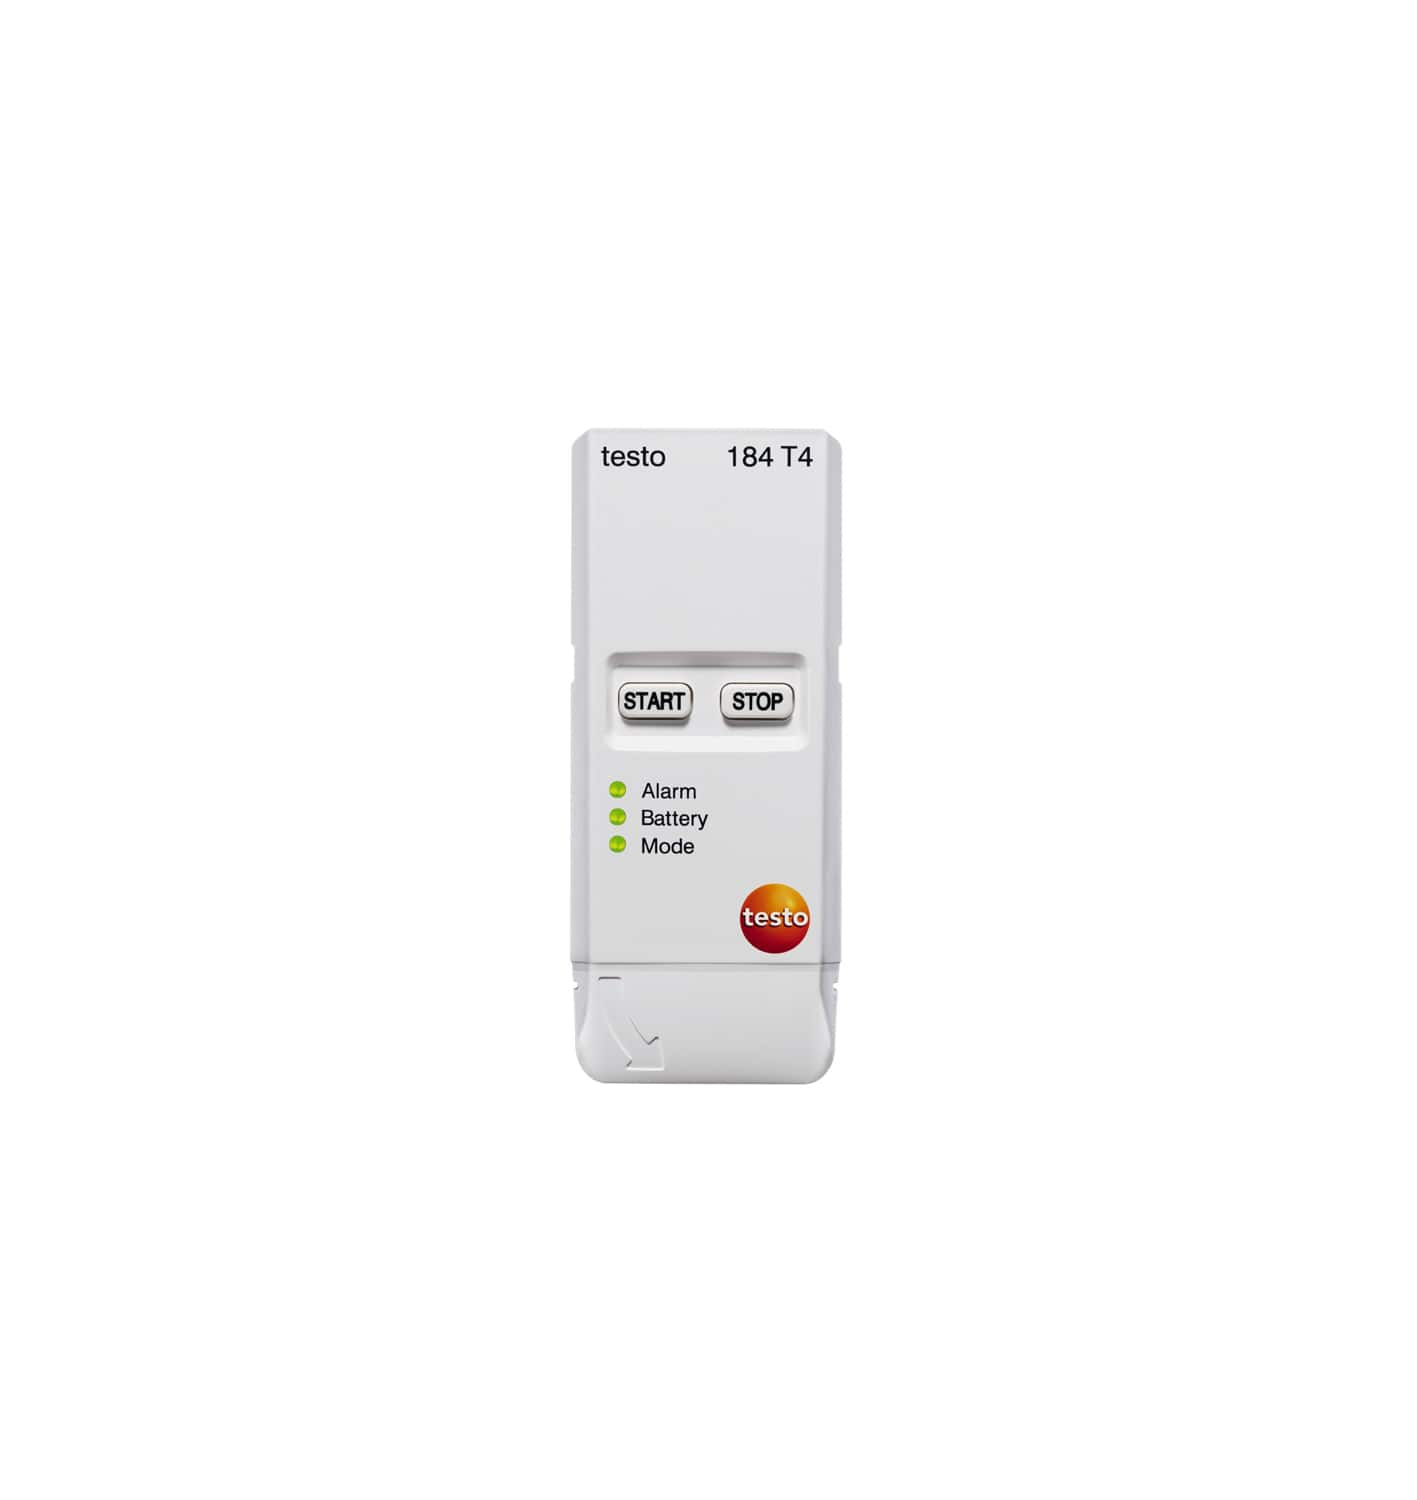 testo 184 T4 - Temperature data logger for transport monitoring